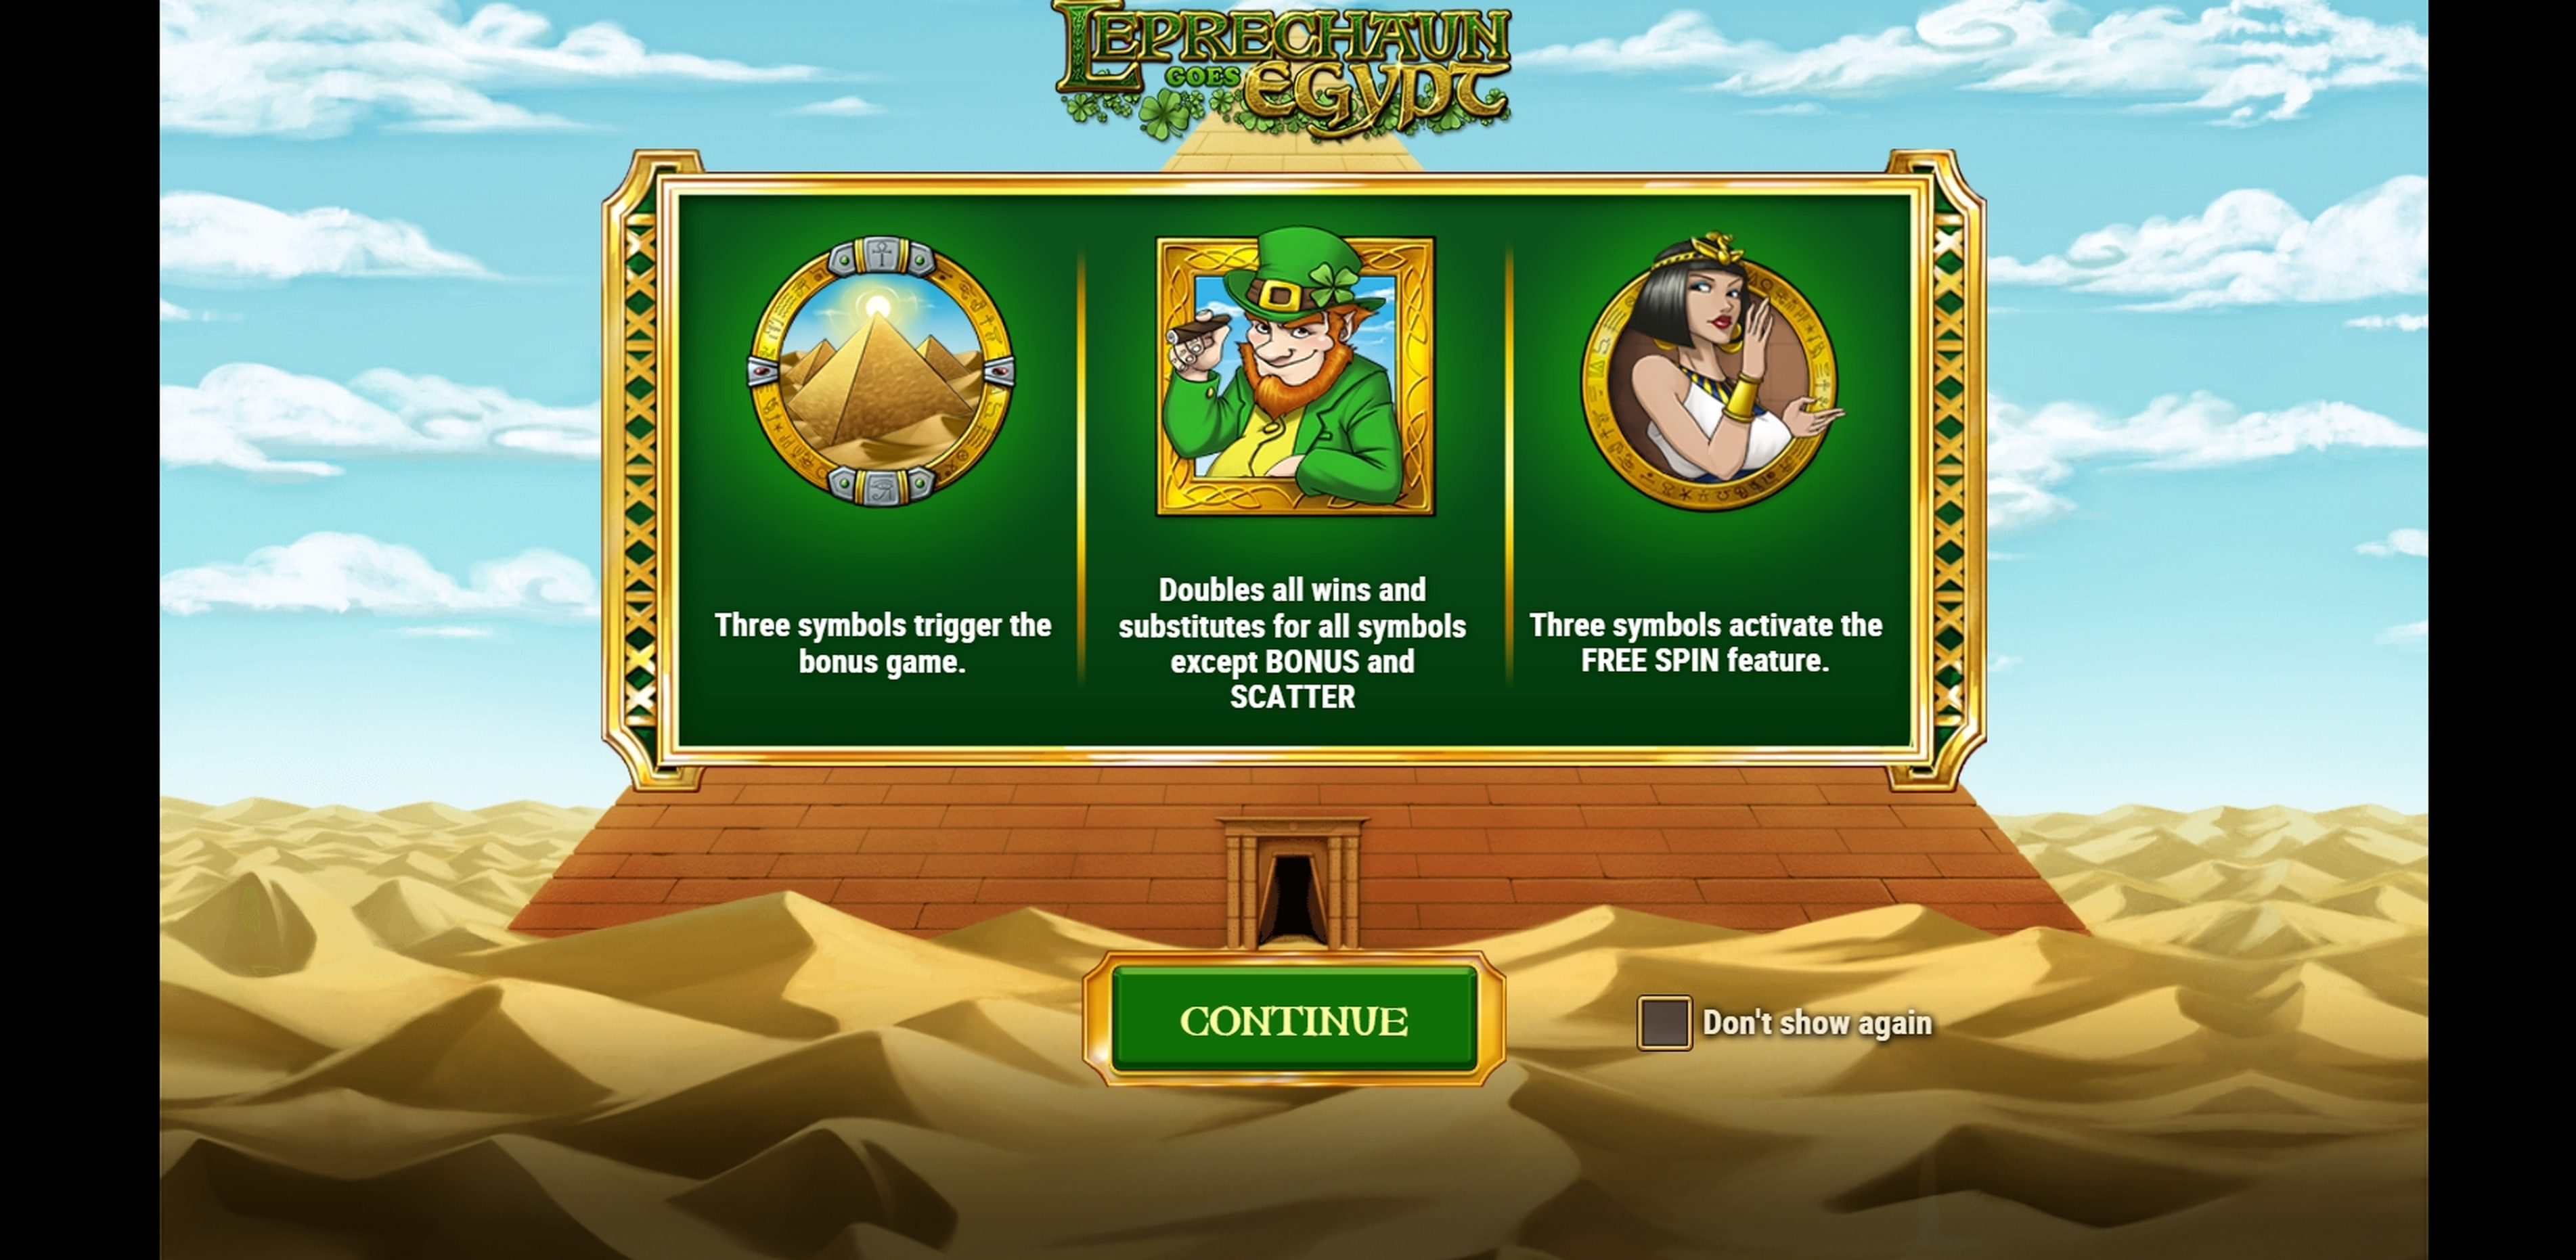 Play Leprechaun goes Egypt Free Casino Slot Game by Playn GO